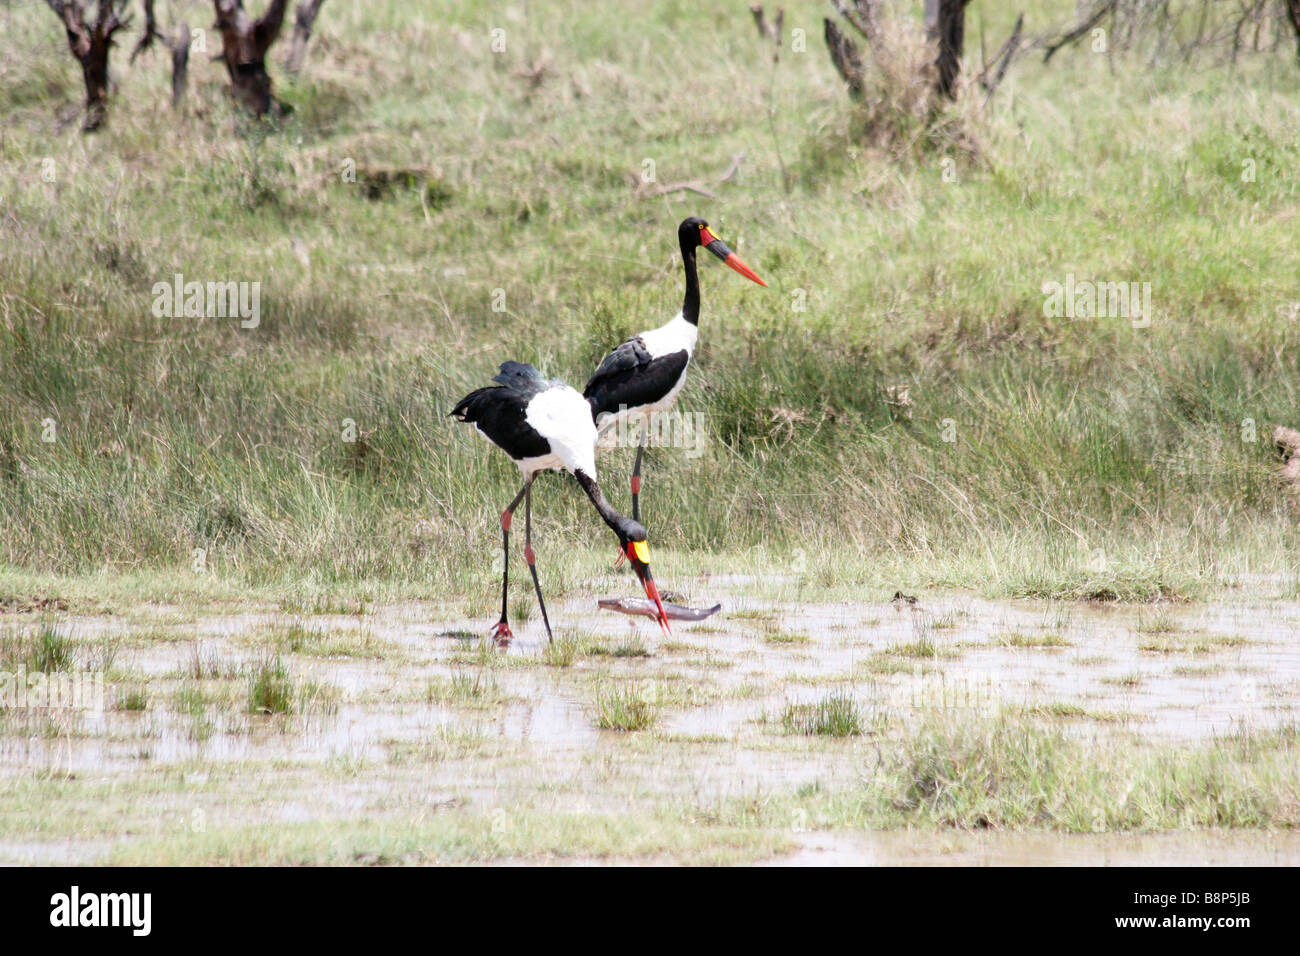 Africa Tanzania Lake Manyara National Park two Saddle billed Stork Ephippiorhynchus senegalensis wading in water - Stock Image